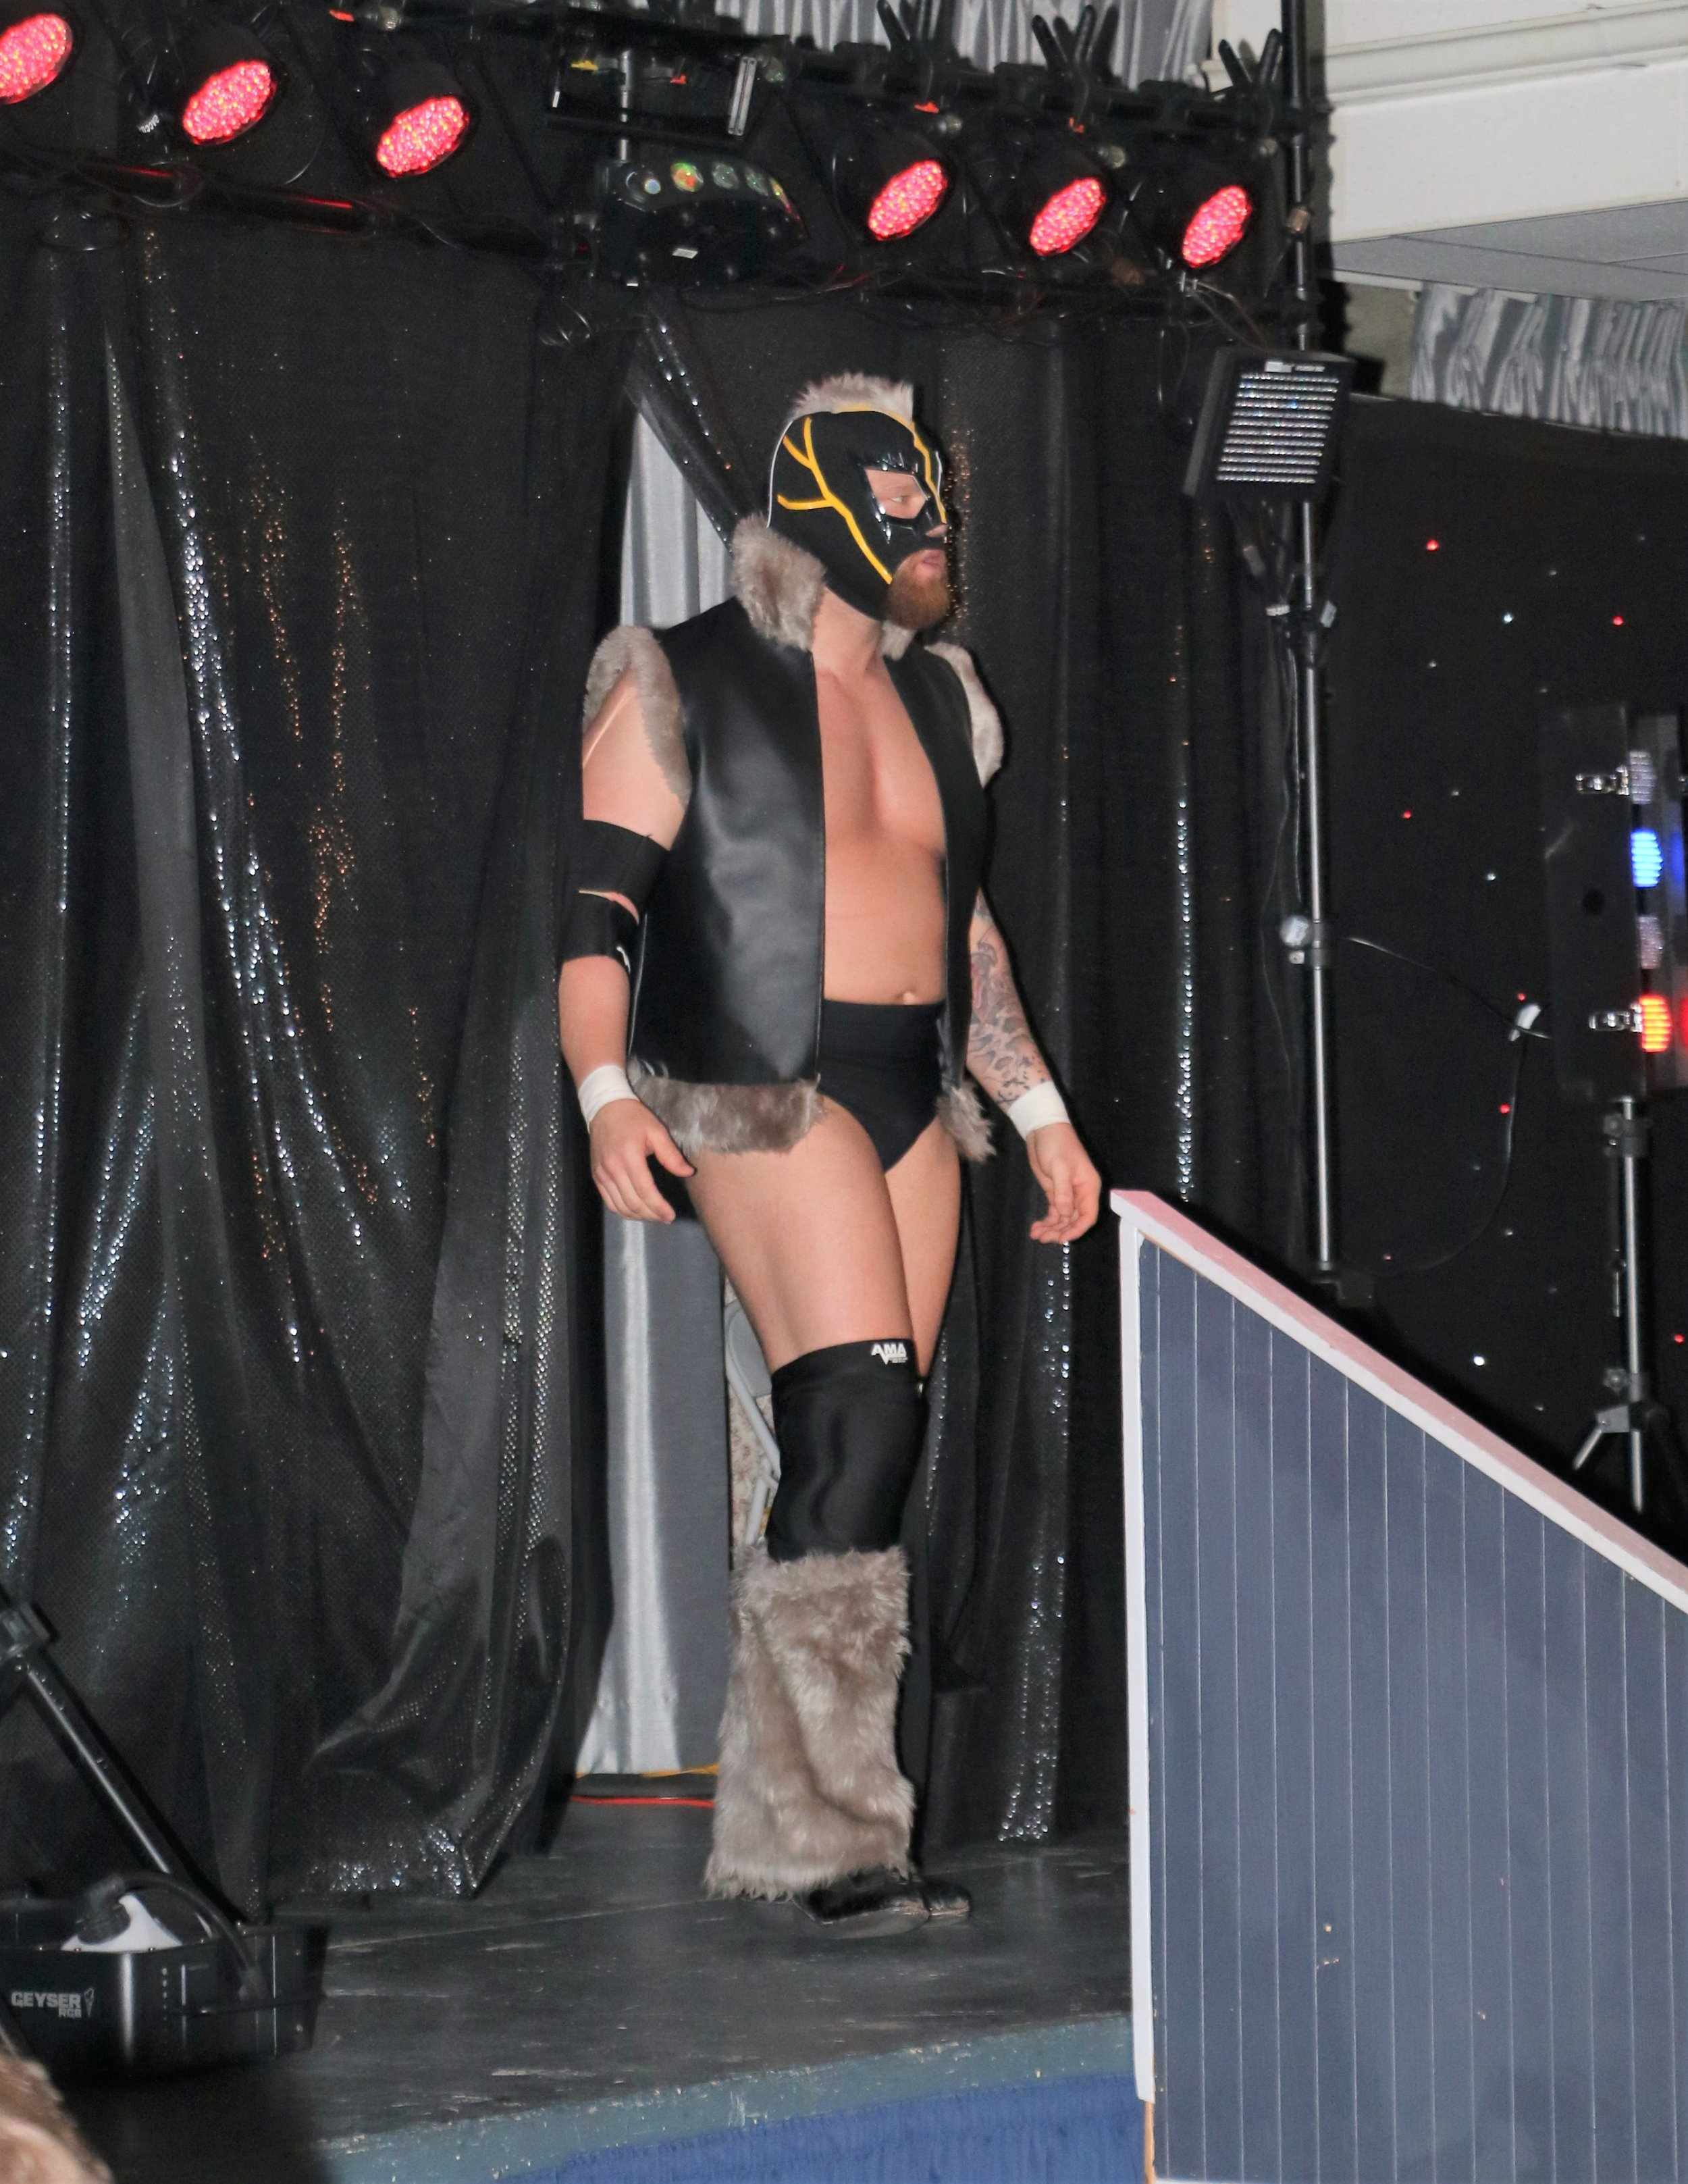 Jay Bradley enters the arena for his match.